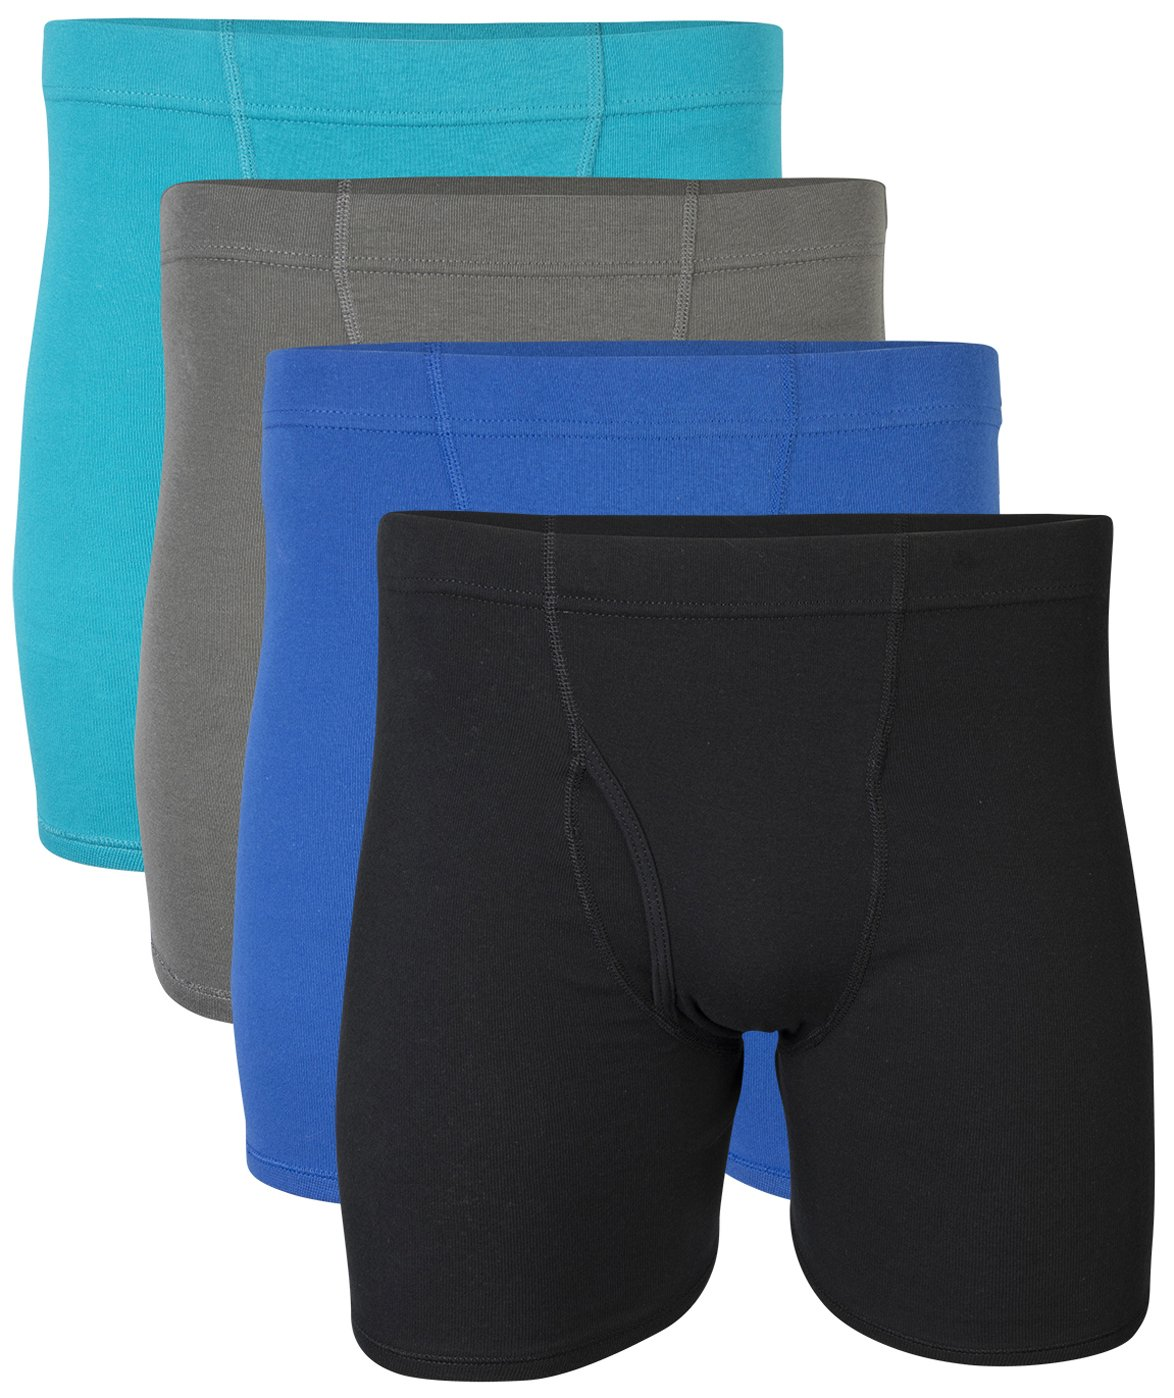 Gildan Men's Covered Waistband Boxer Brief 4 Pack, Mixed Royal, XX-Large